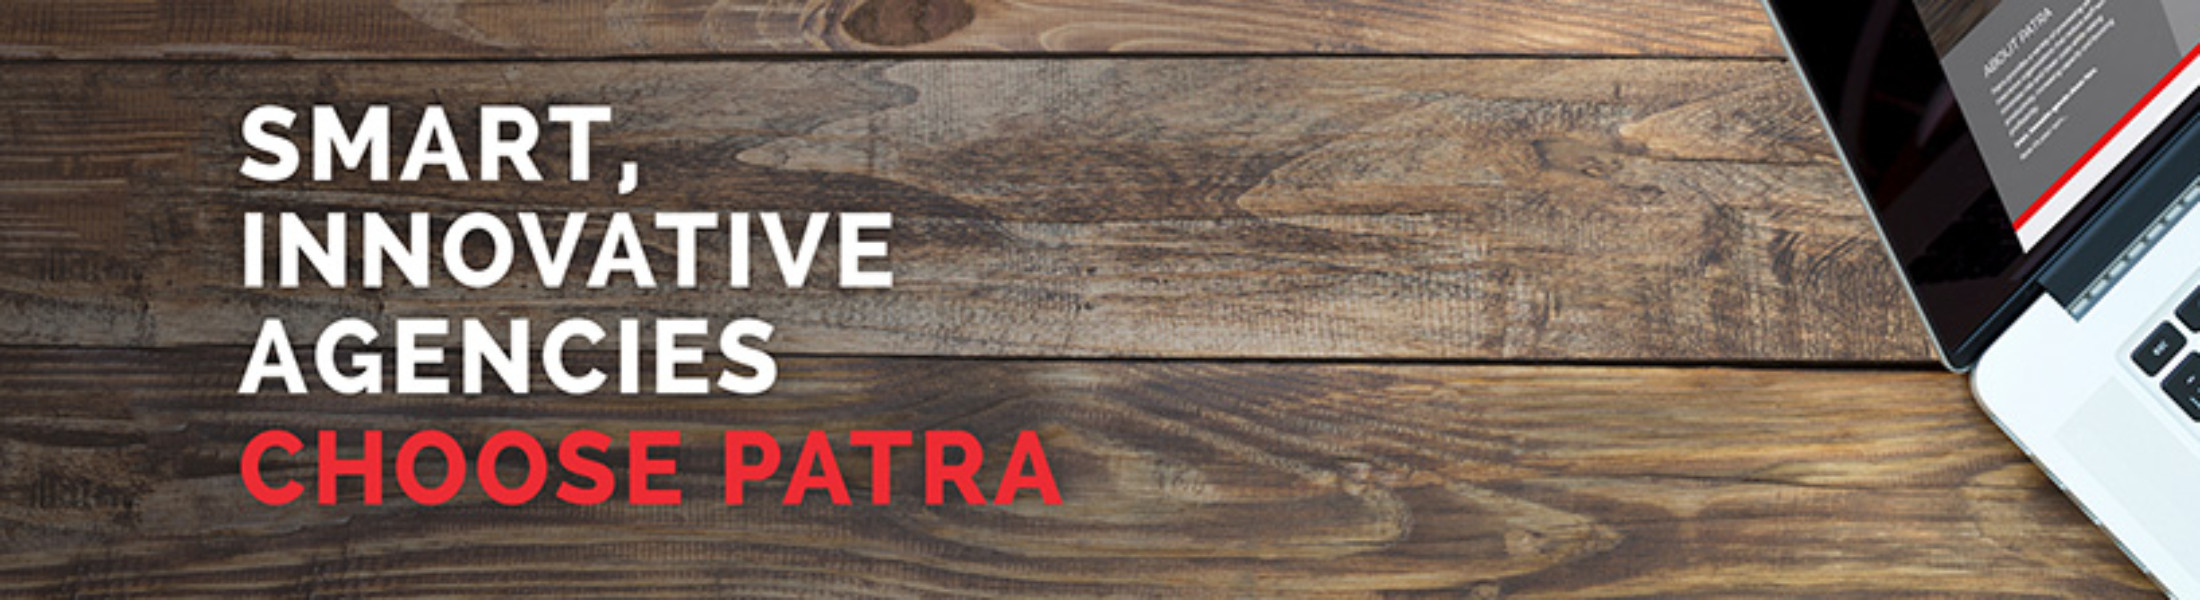 hardwood flooring pittsburgh pa of patra corp intended for slider img 1 2200x600 c